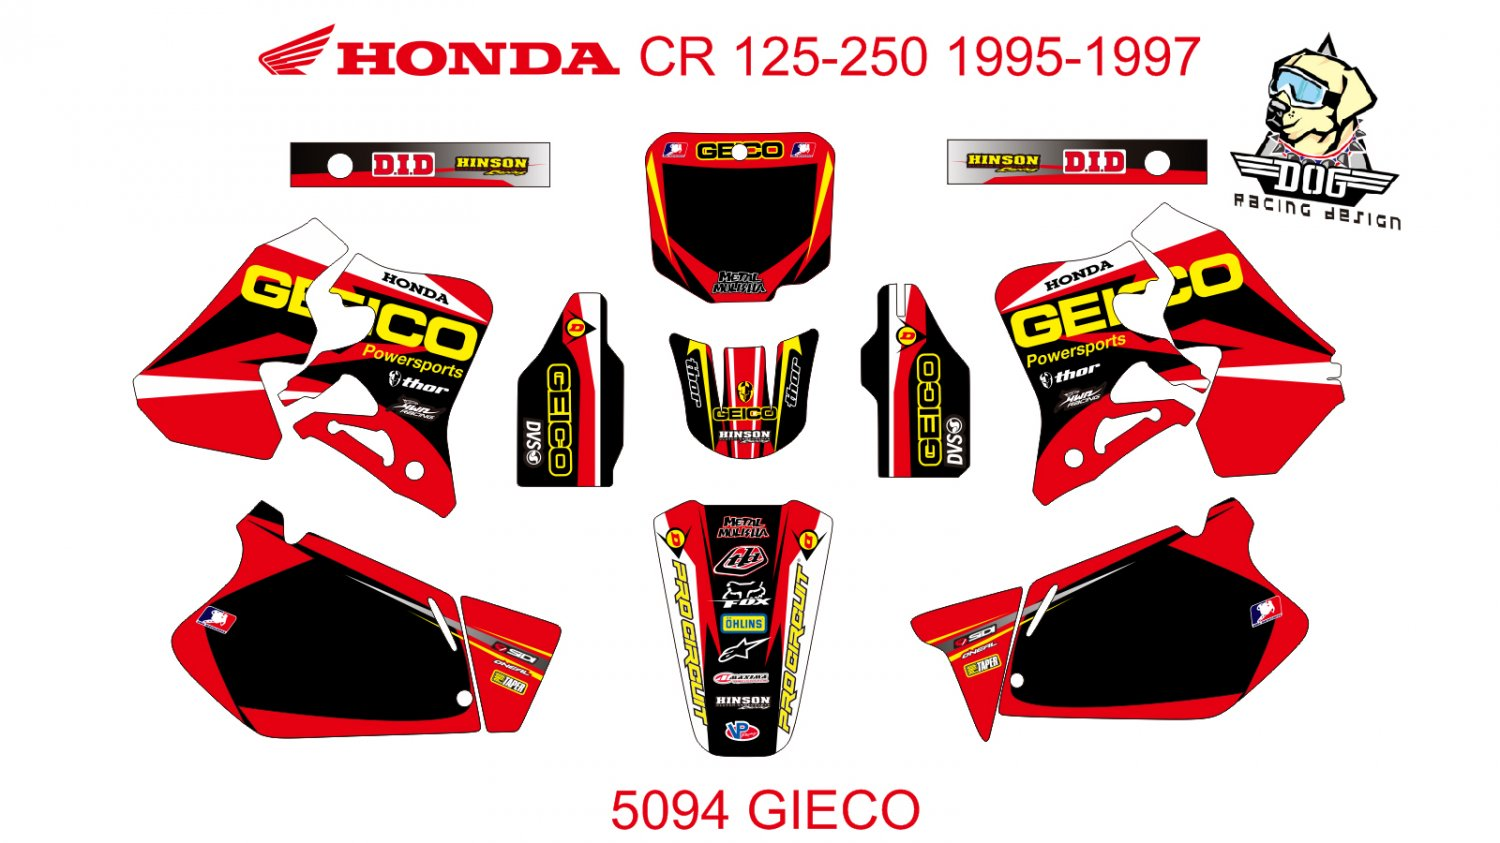 HONDA CR 125-250 1995-1997 GRAPHIC DECAL KIT CODE.5094